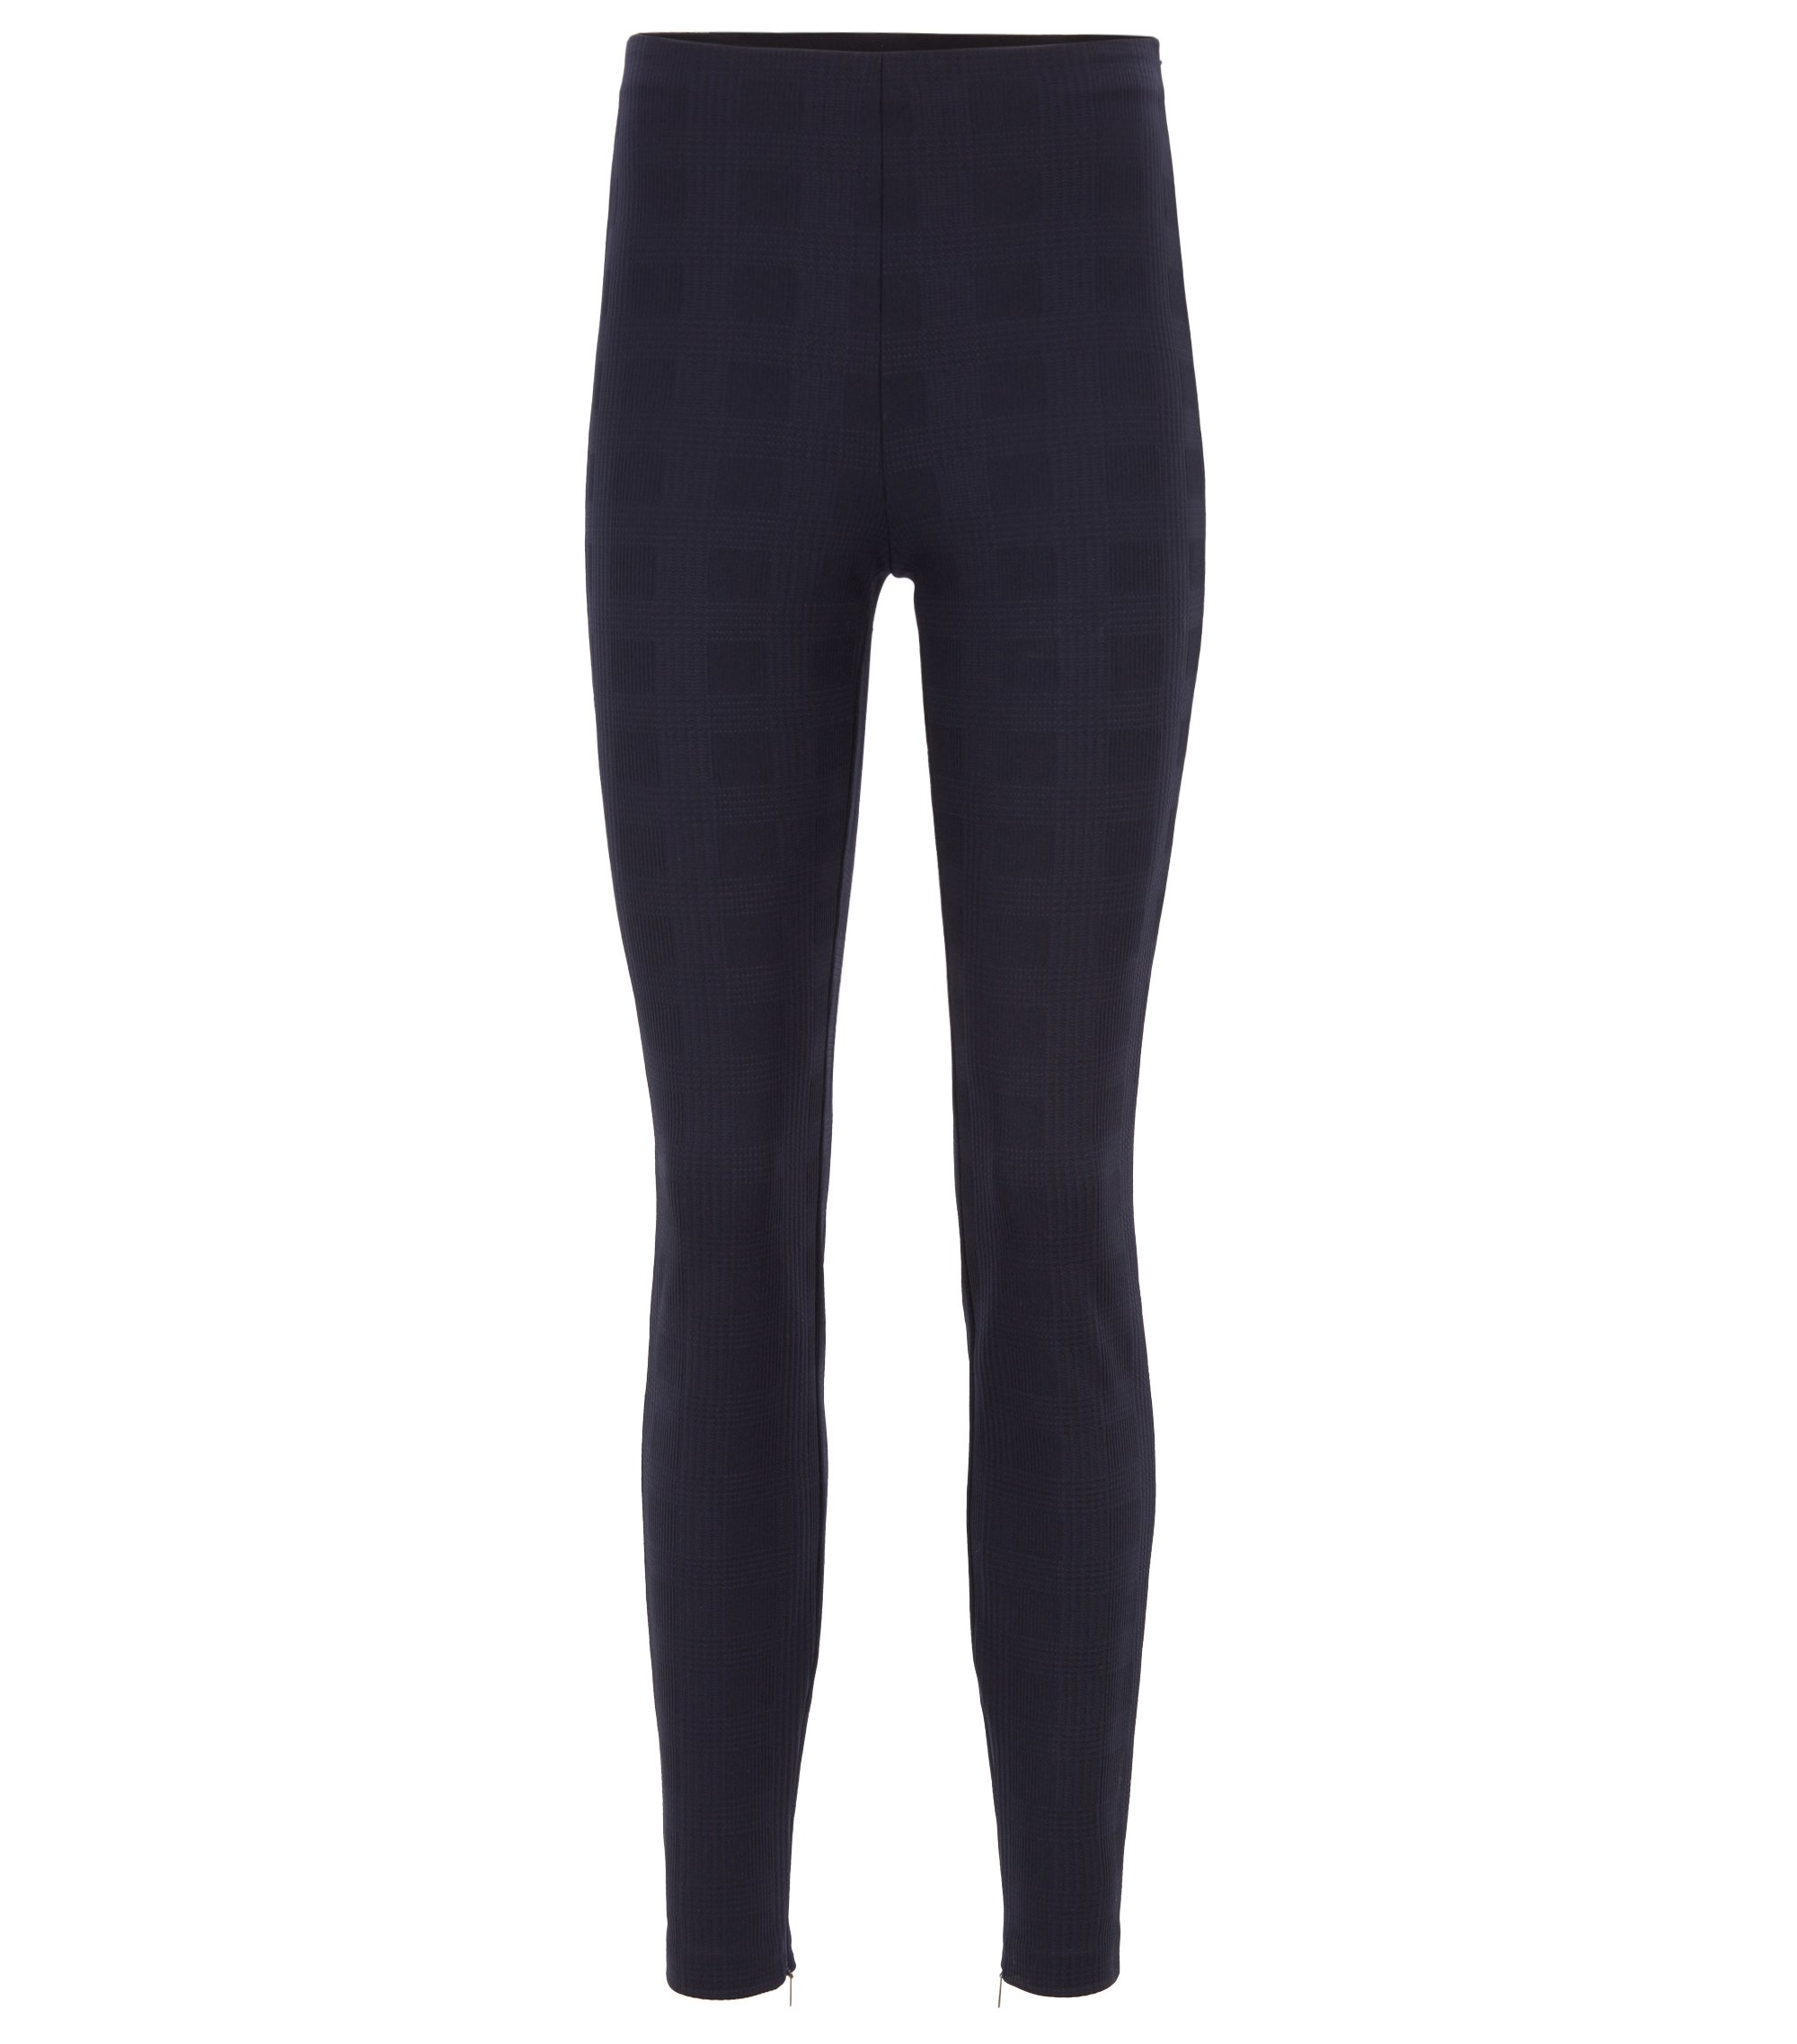 Extra-slim-fit trousers in Italian stretch jersey, Dark Blue